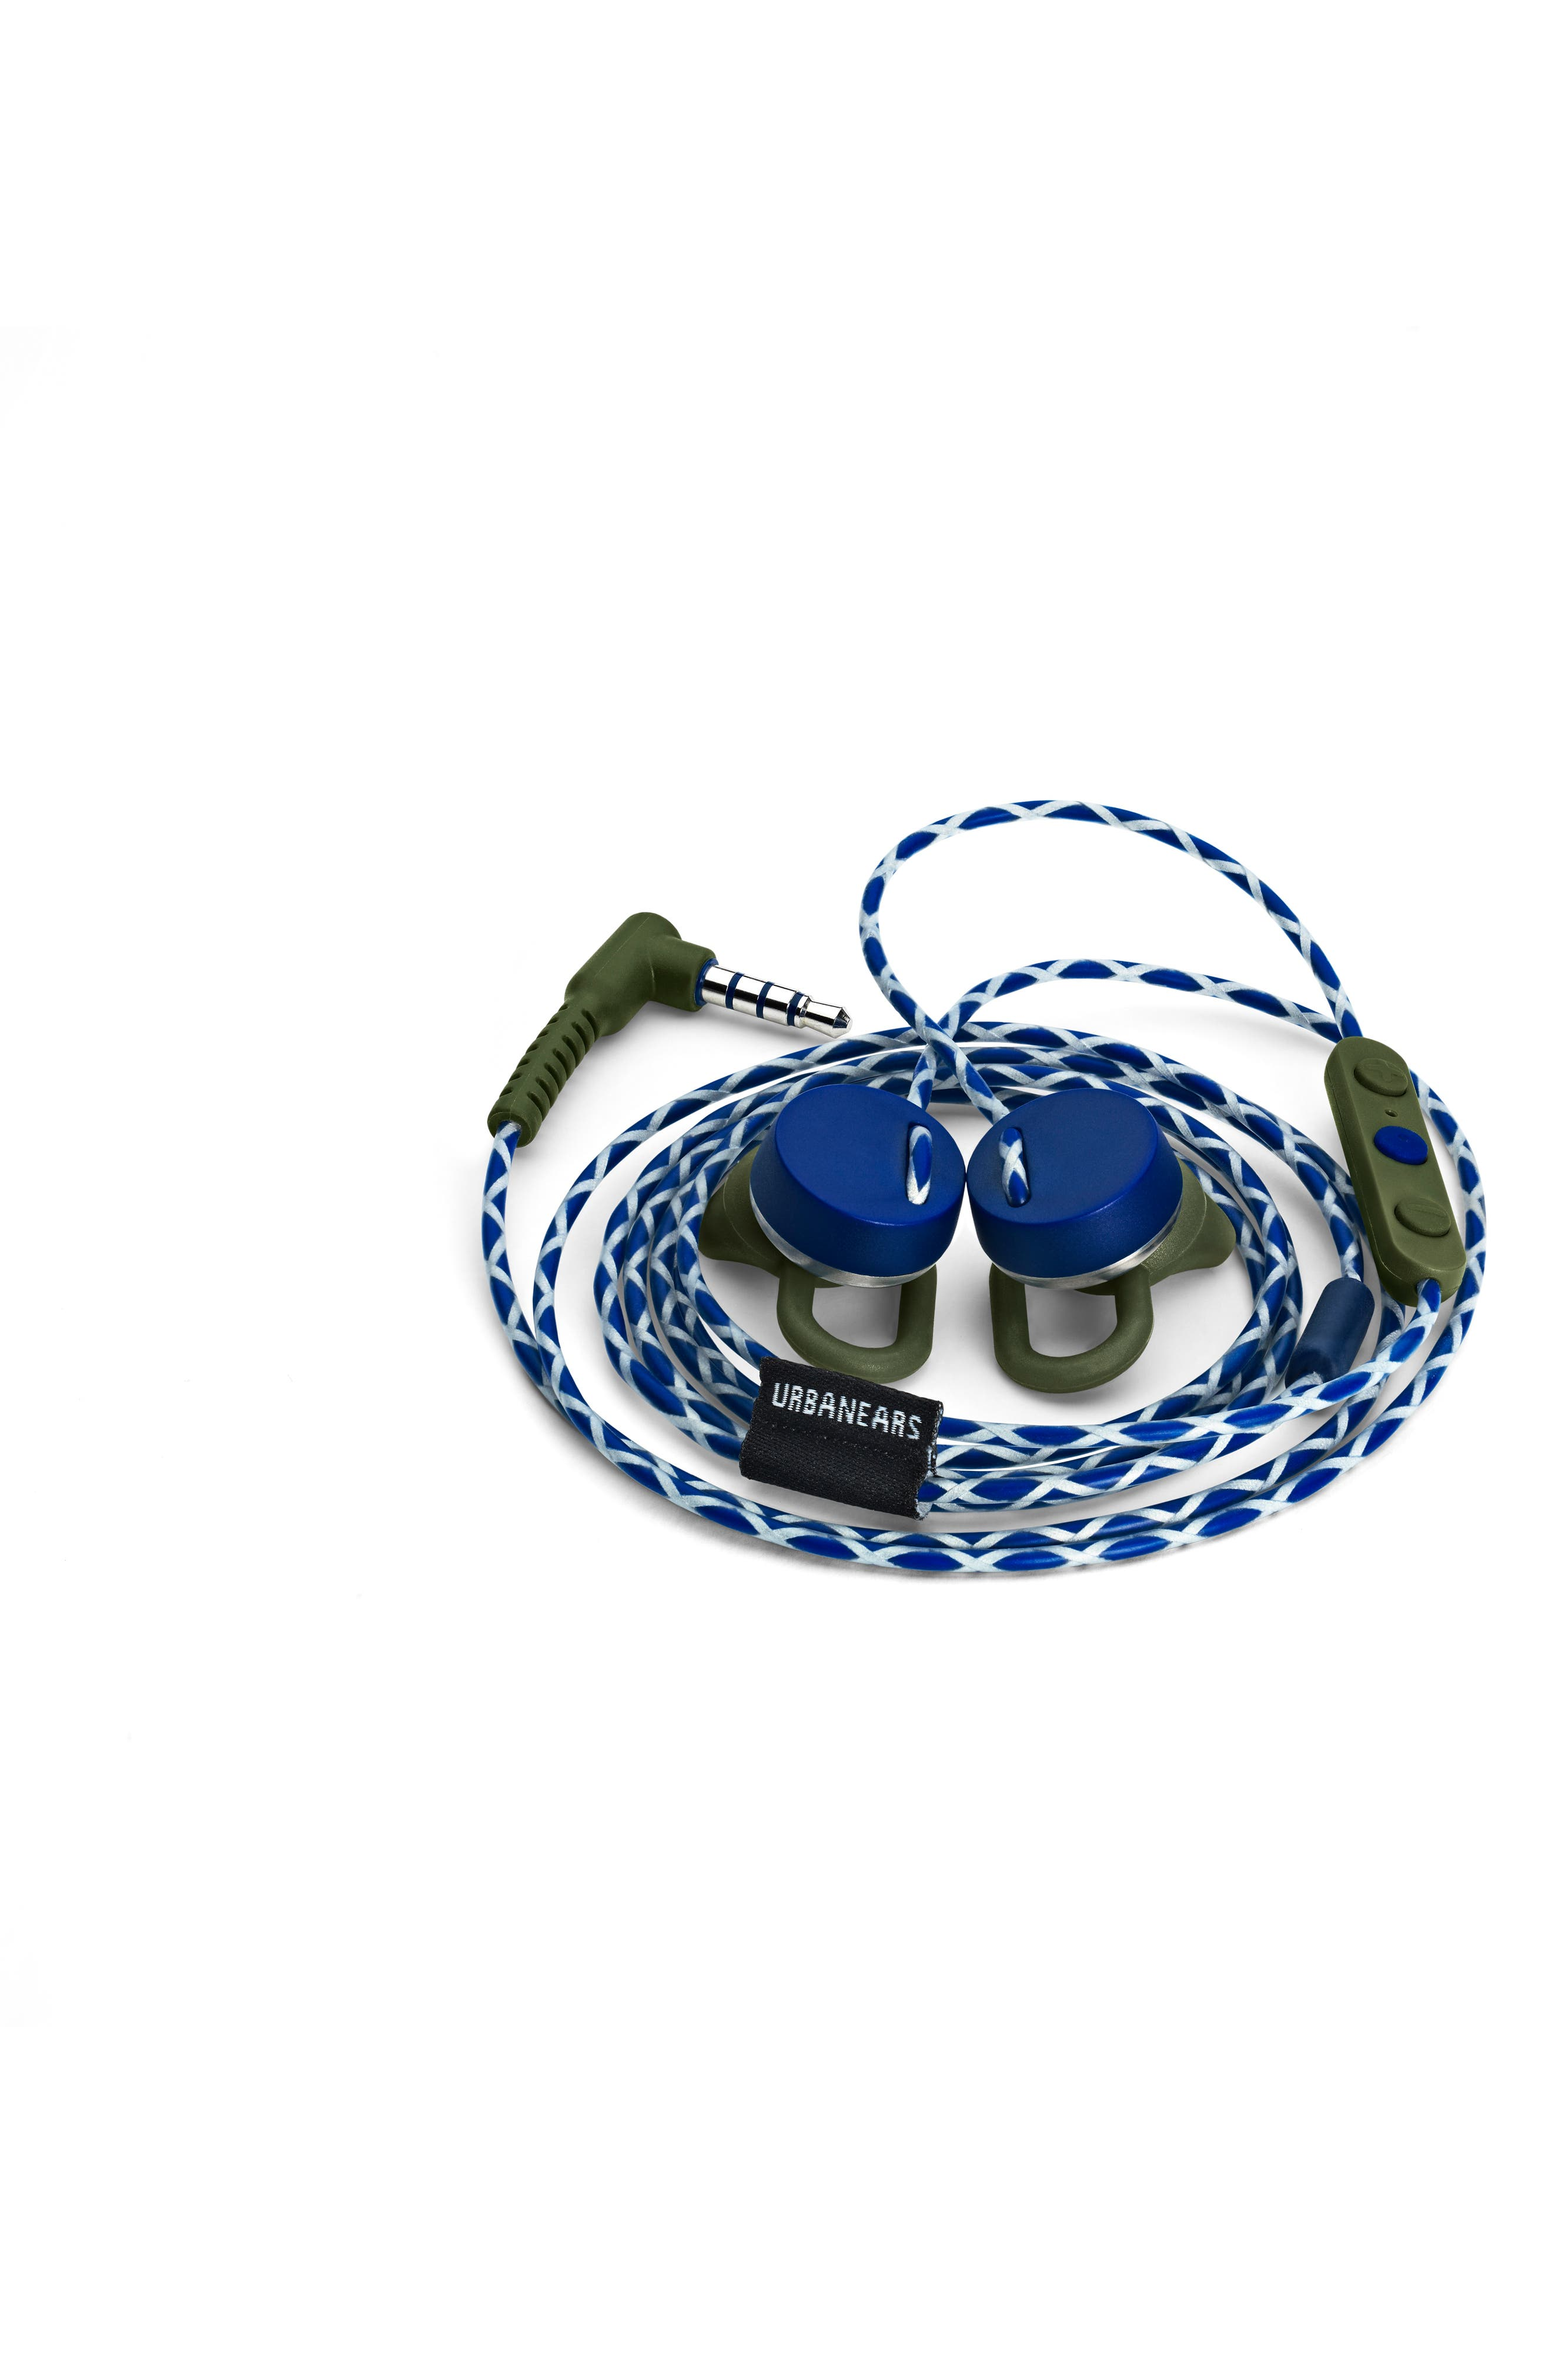 Reimers Apple Edition Earbuds,                             Main thumbnail 1, color,                             TRAIL